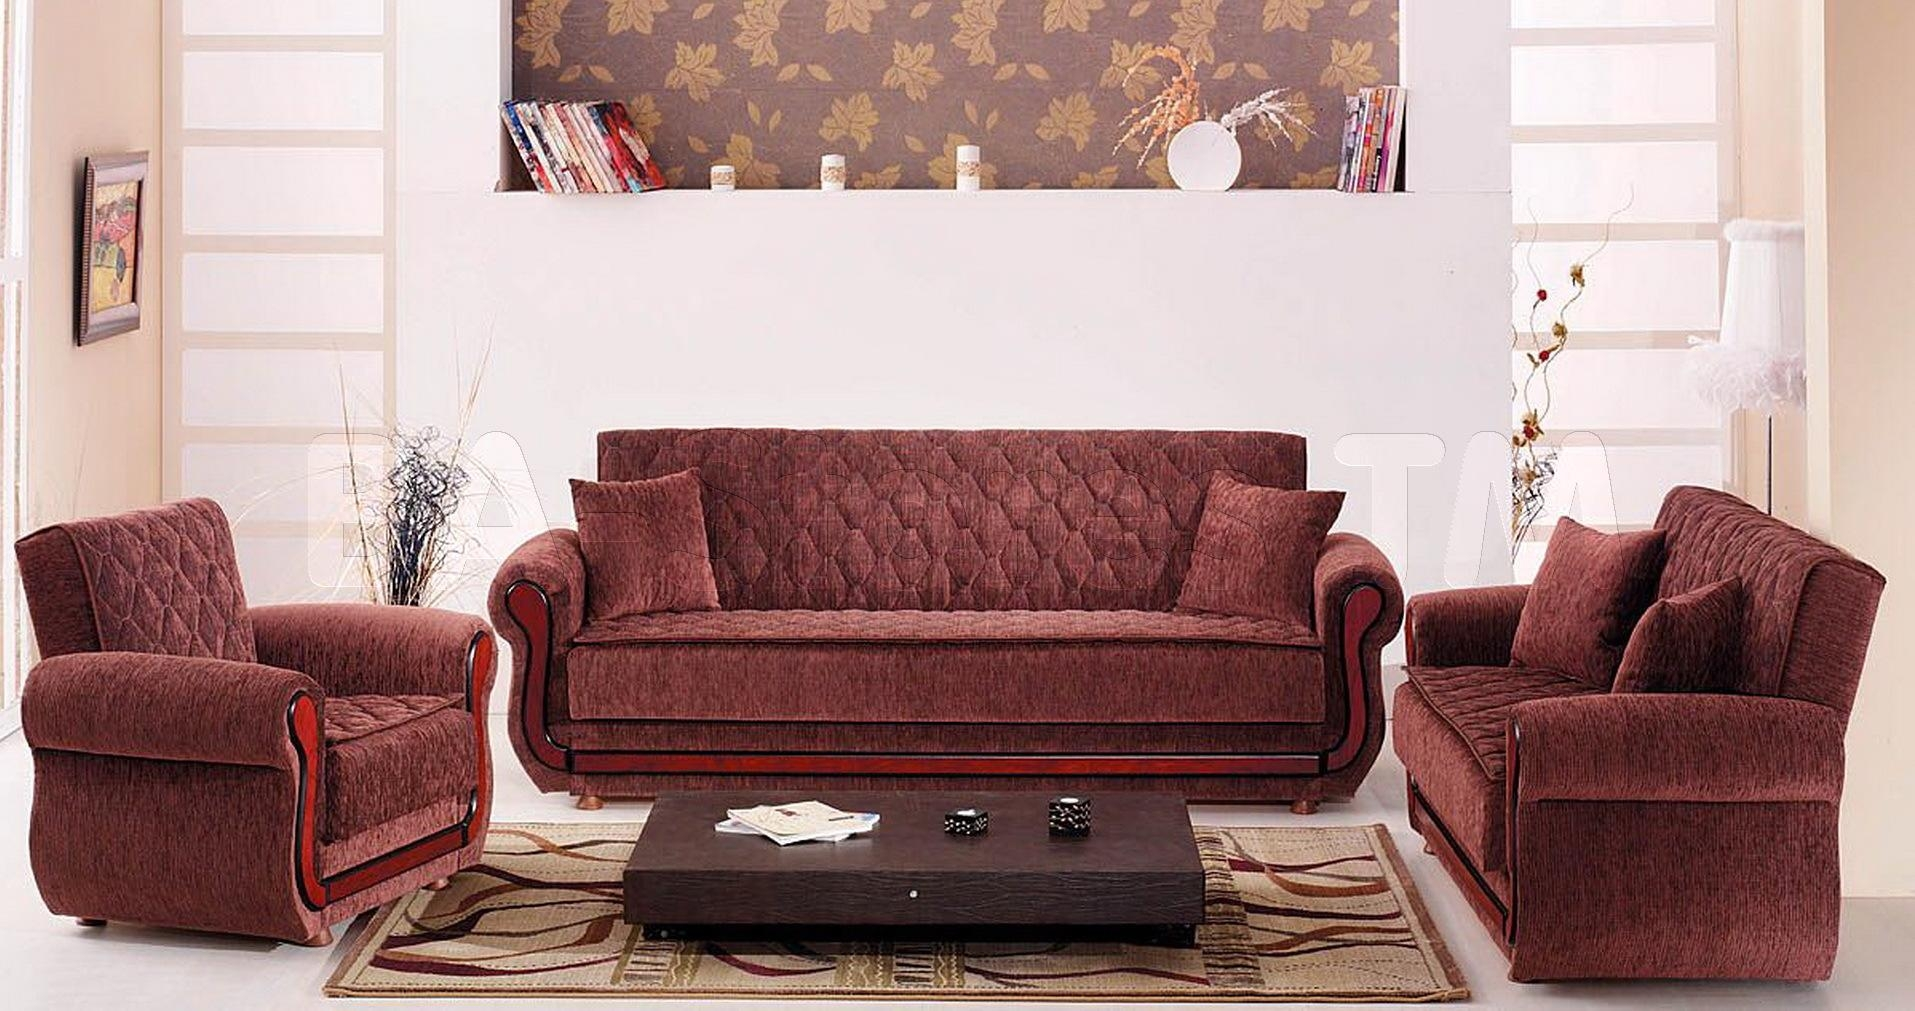 Sofa And Chair Set With Ideas Photo 3418 | Kengire Throughout Sofa And Chair Set (View 6 of 20)